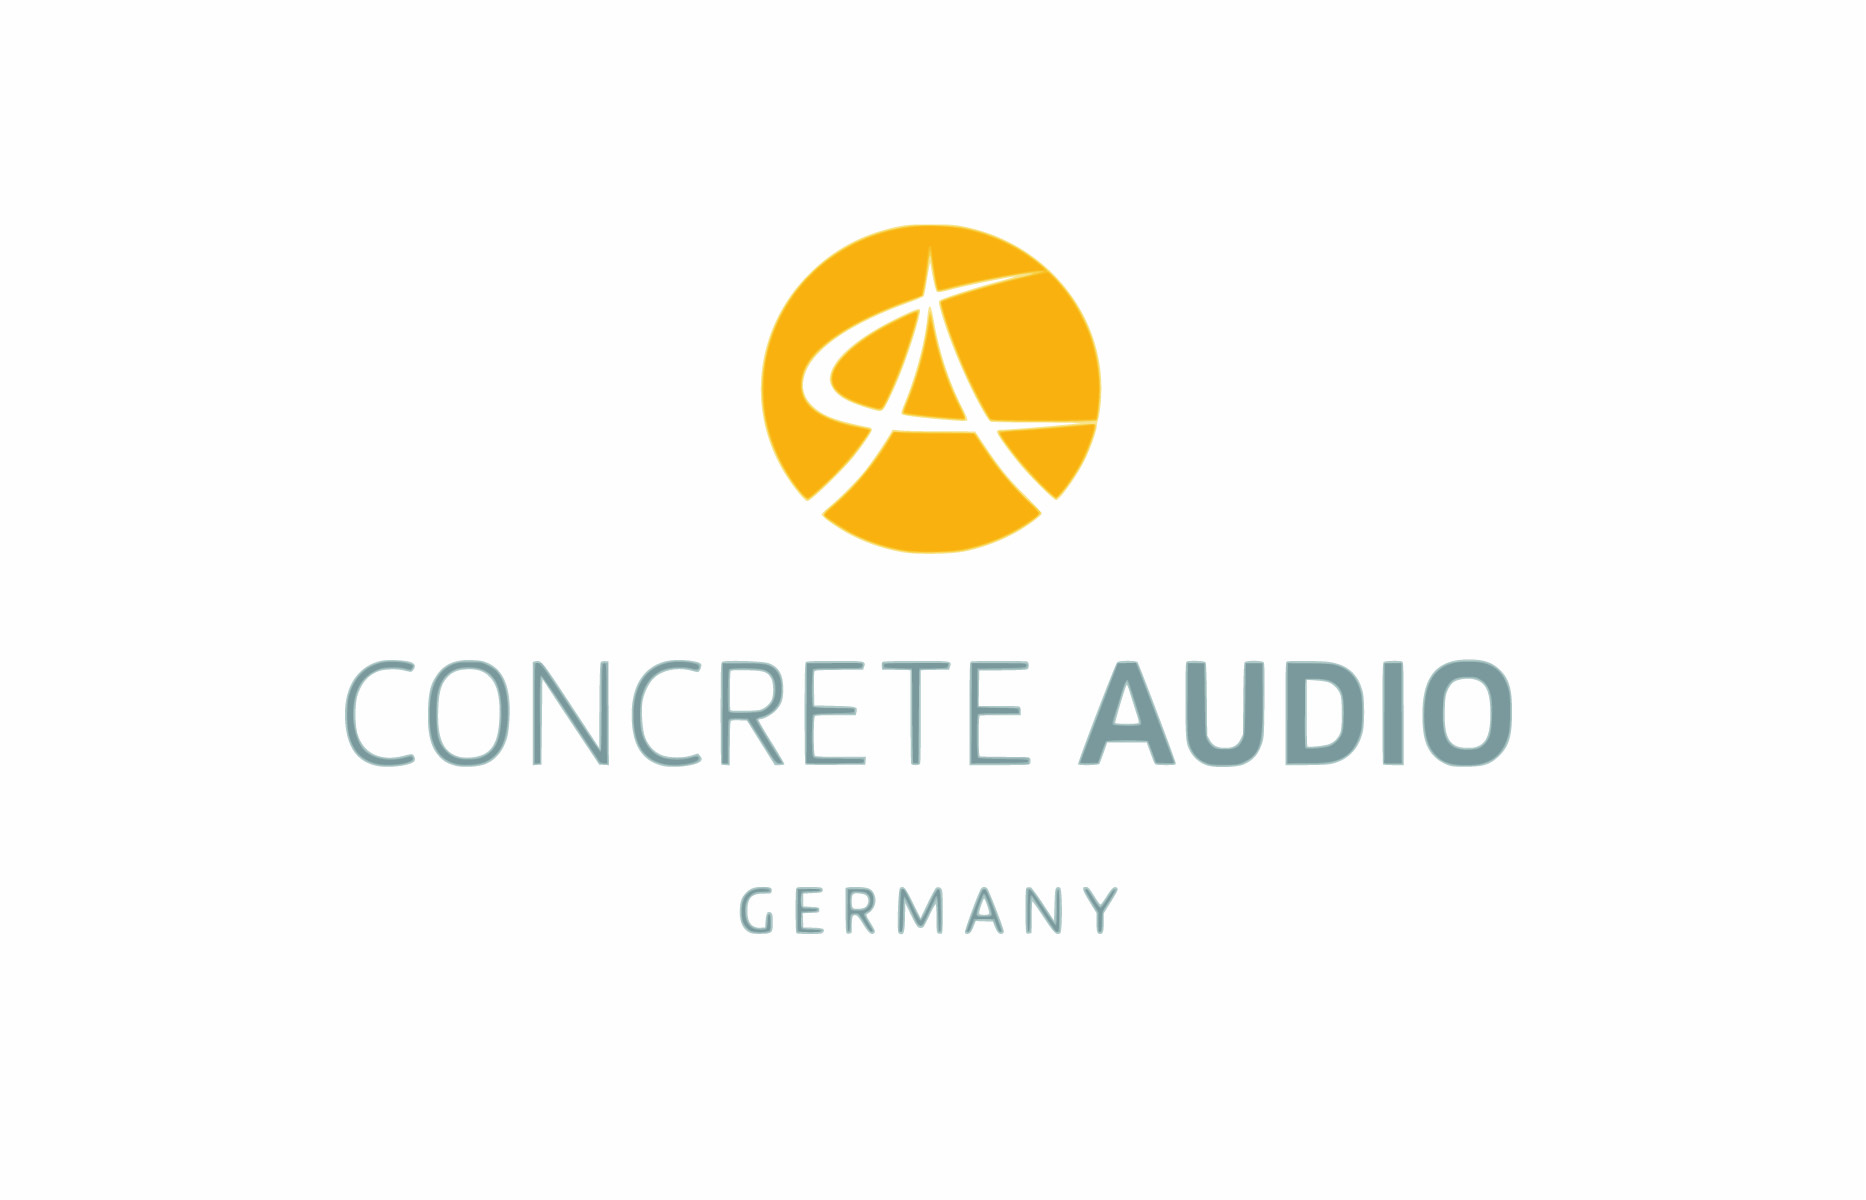 Concrete Audio